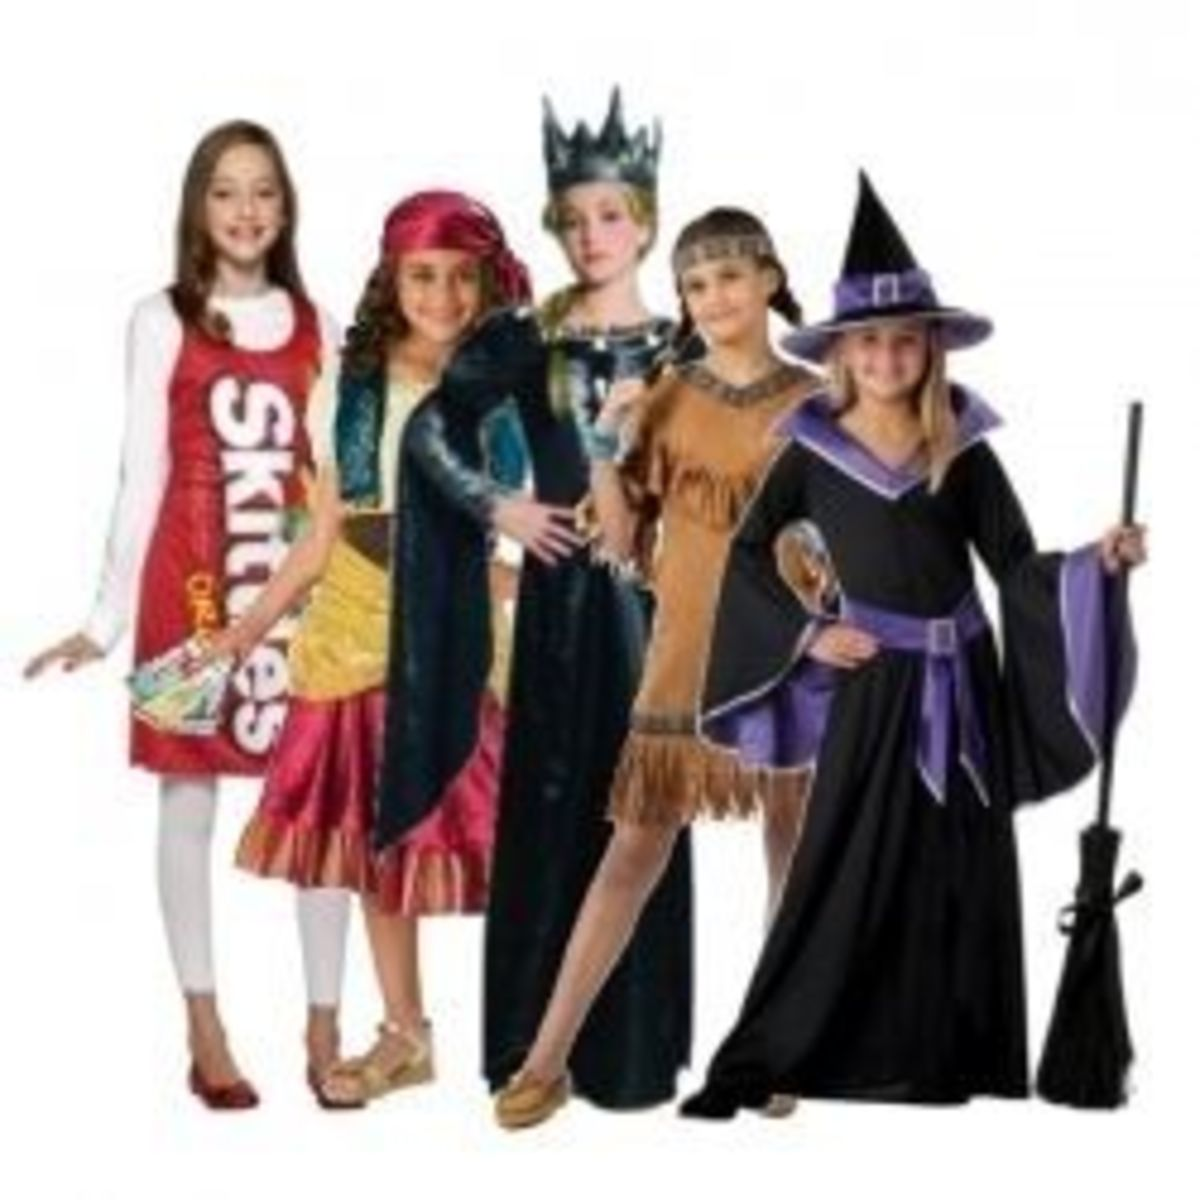 Modest Halloween Costumes for Teenage Girls, Tweens and Girls | 2015